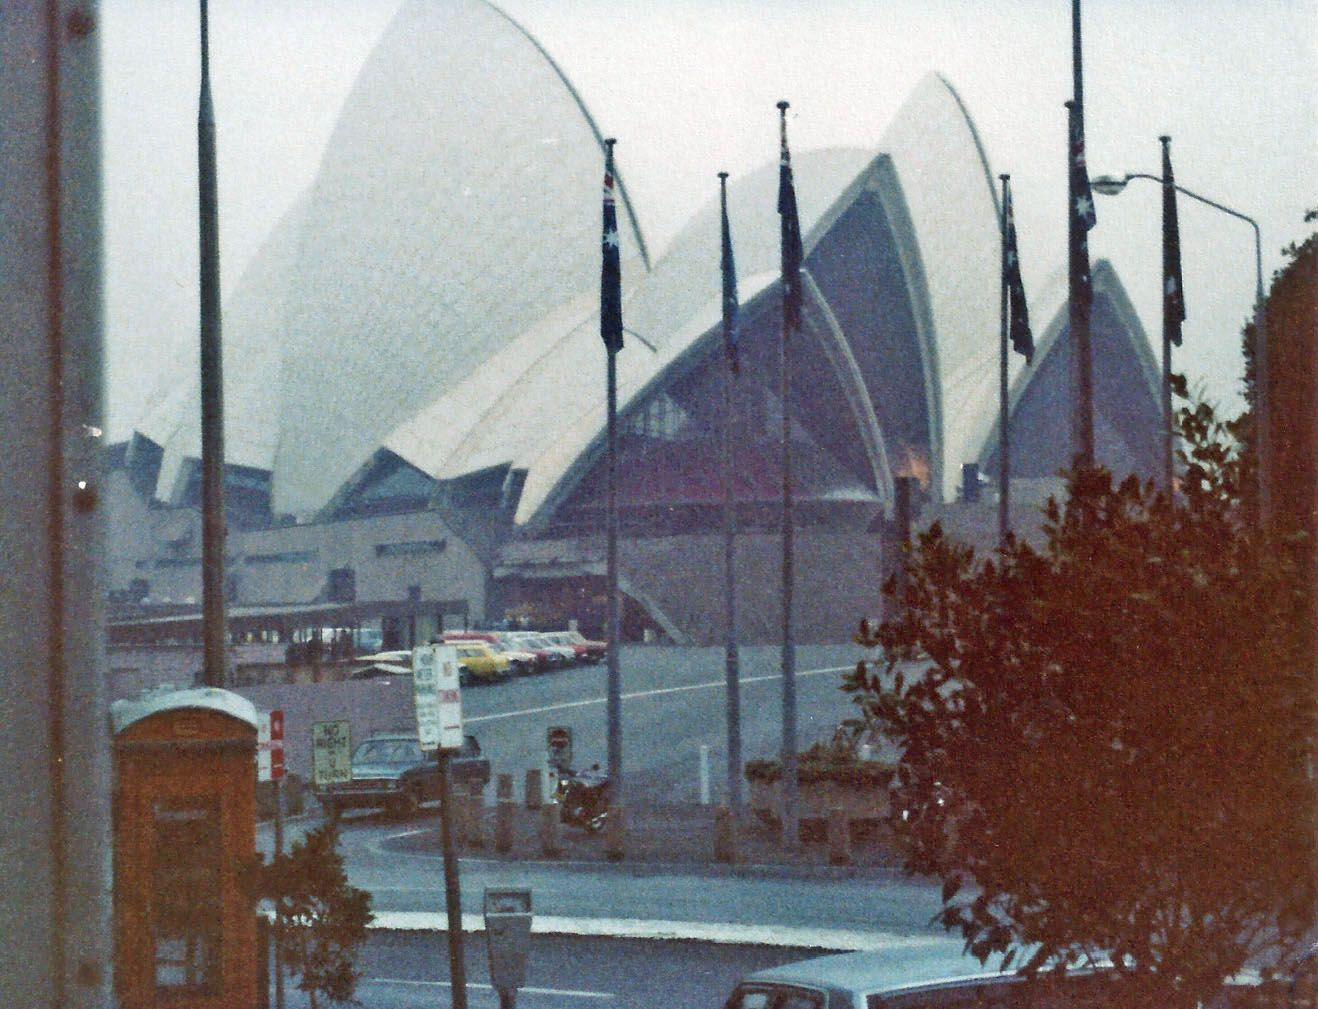 Overcast day while driving by the Opera House in Sydney, Australia.  May 1980.  Queen Elizabeth was visiting the area so we were unable to get any closer to the opera house that day due to security.